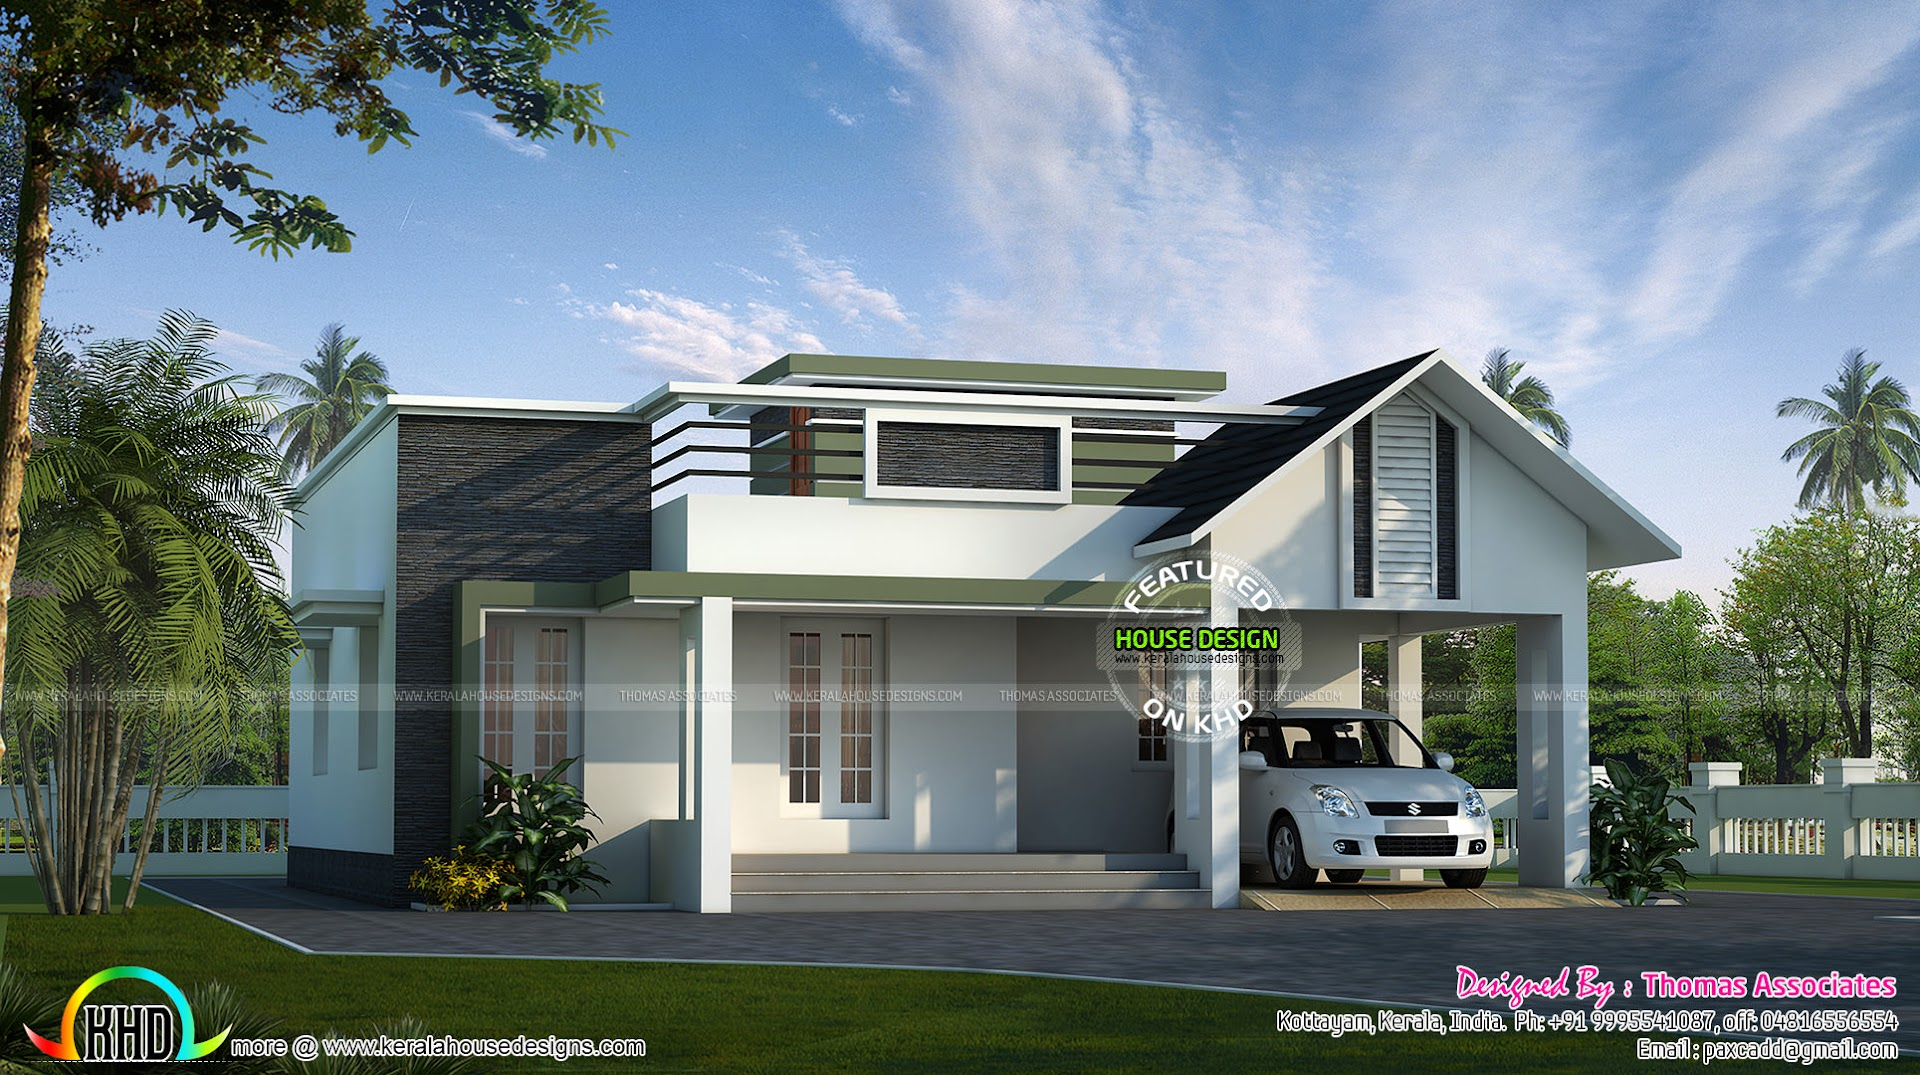 Small simple 1200 sq ft house kerala home design and for Minimalist house design kerala